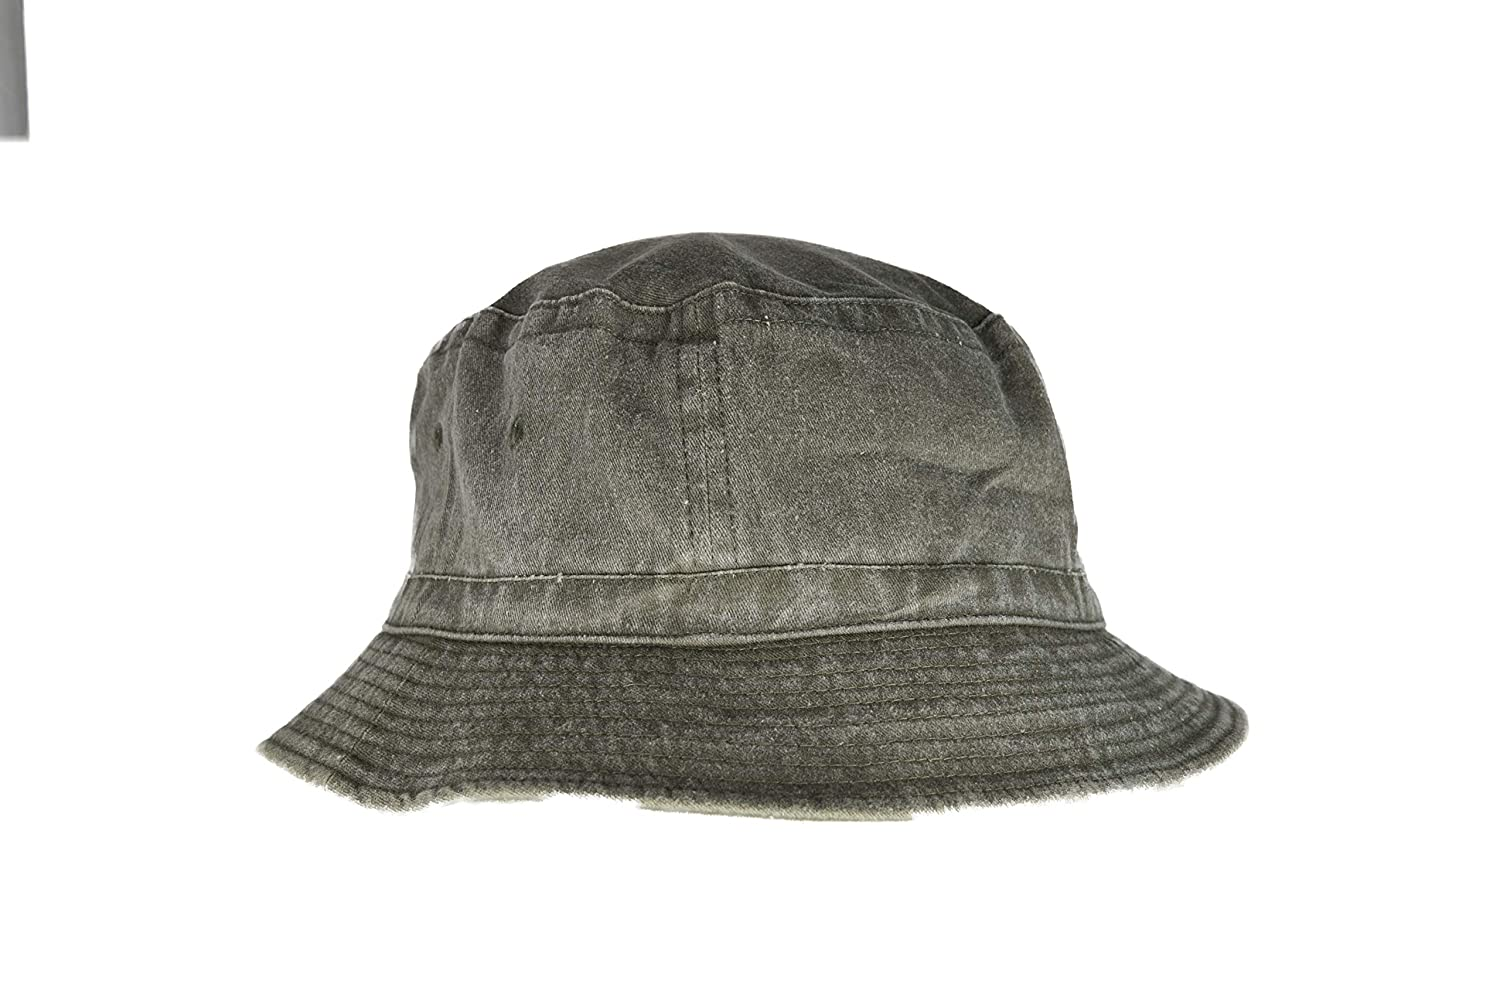 Men s Bucket Hat -Cactus - Size 2X - Hat Size 7 3 4-8 at Amazon Men s  Clothing store  9bfd7c54afd